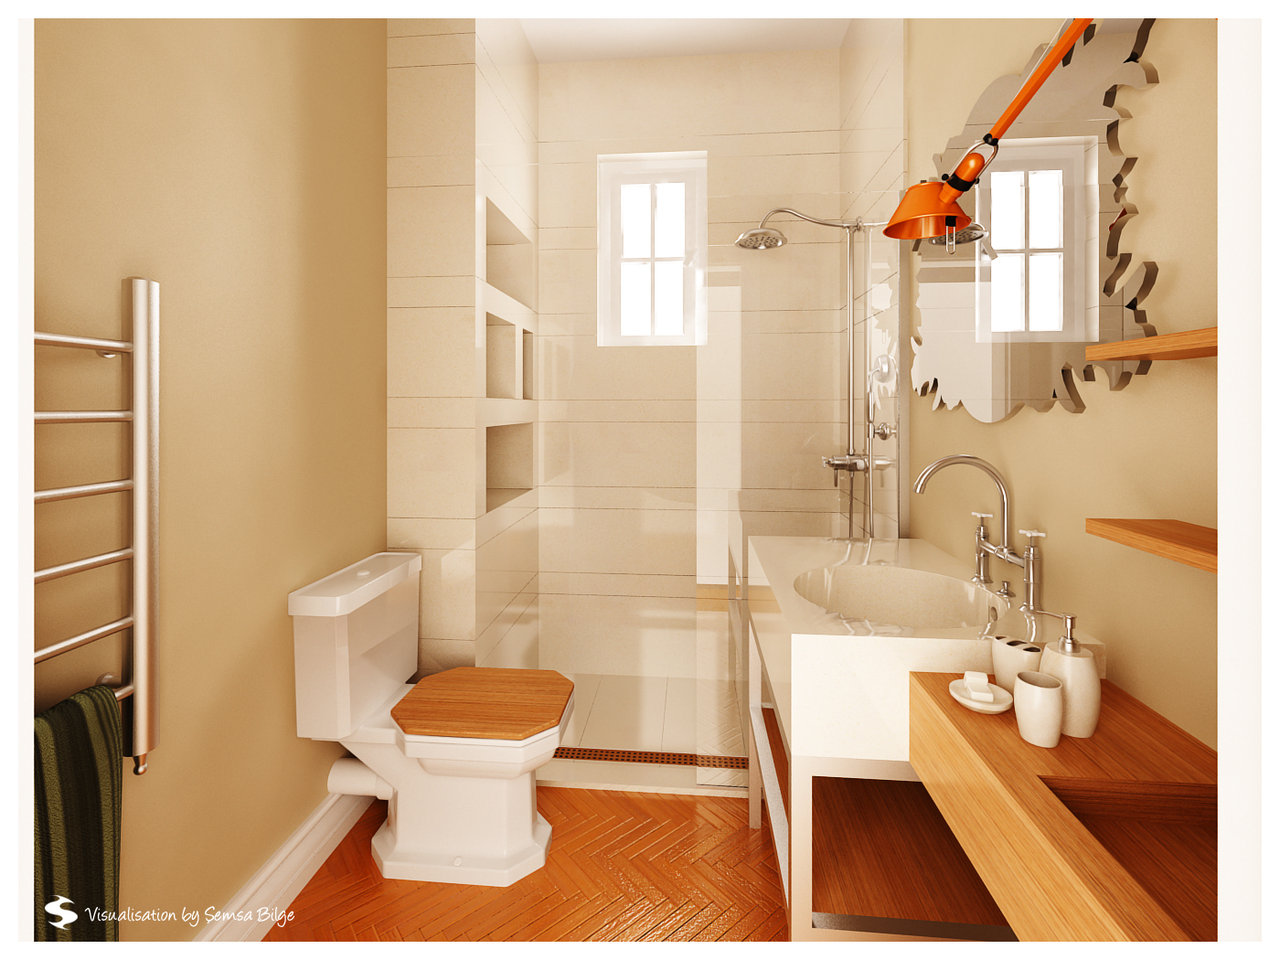 Impressive Unique Small Bathroom Design 1280 x 960 · 201 kB · jpeg